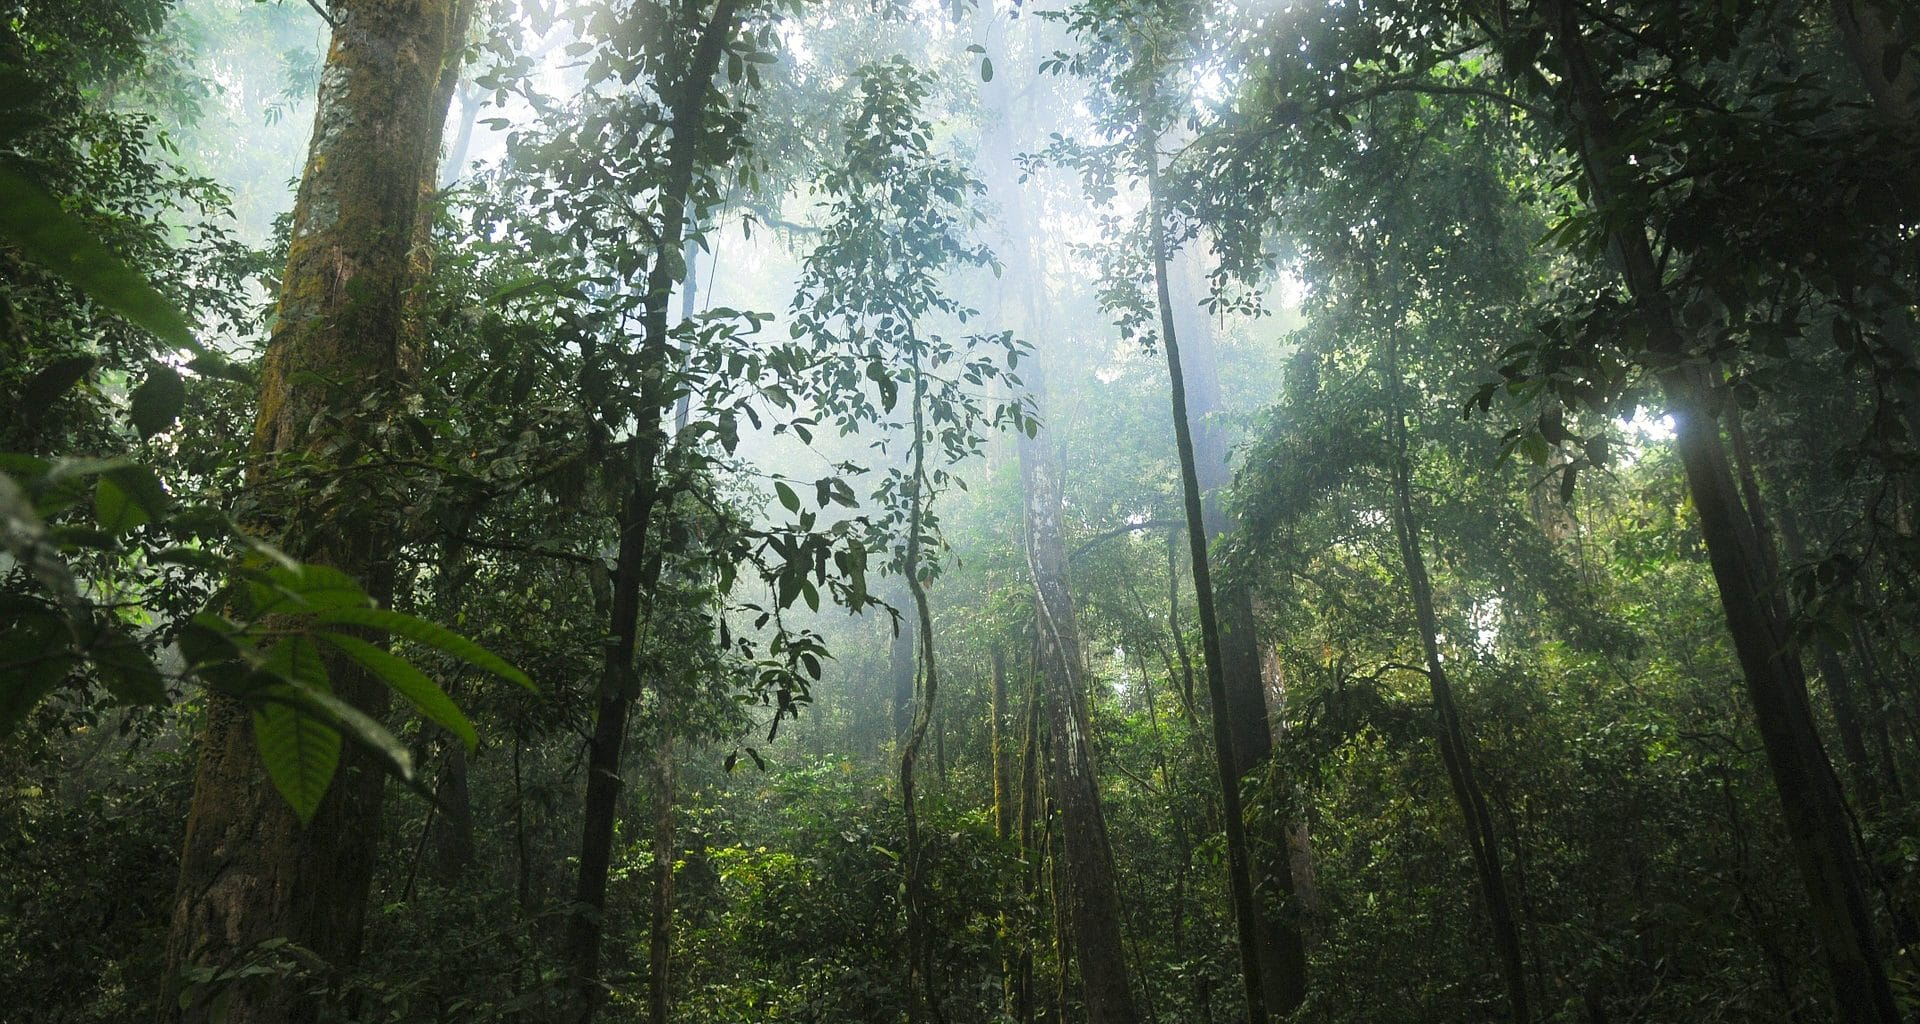 rainforest facts - featured image